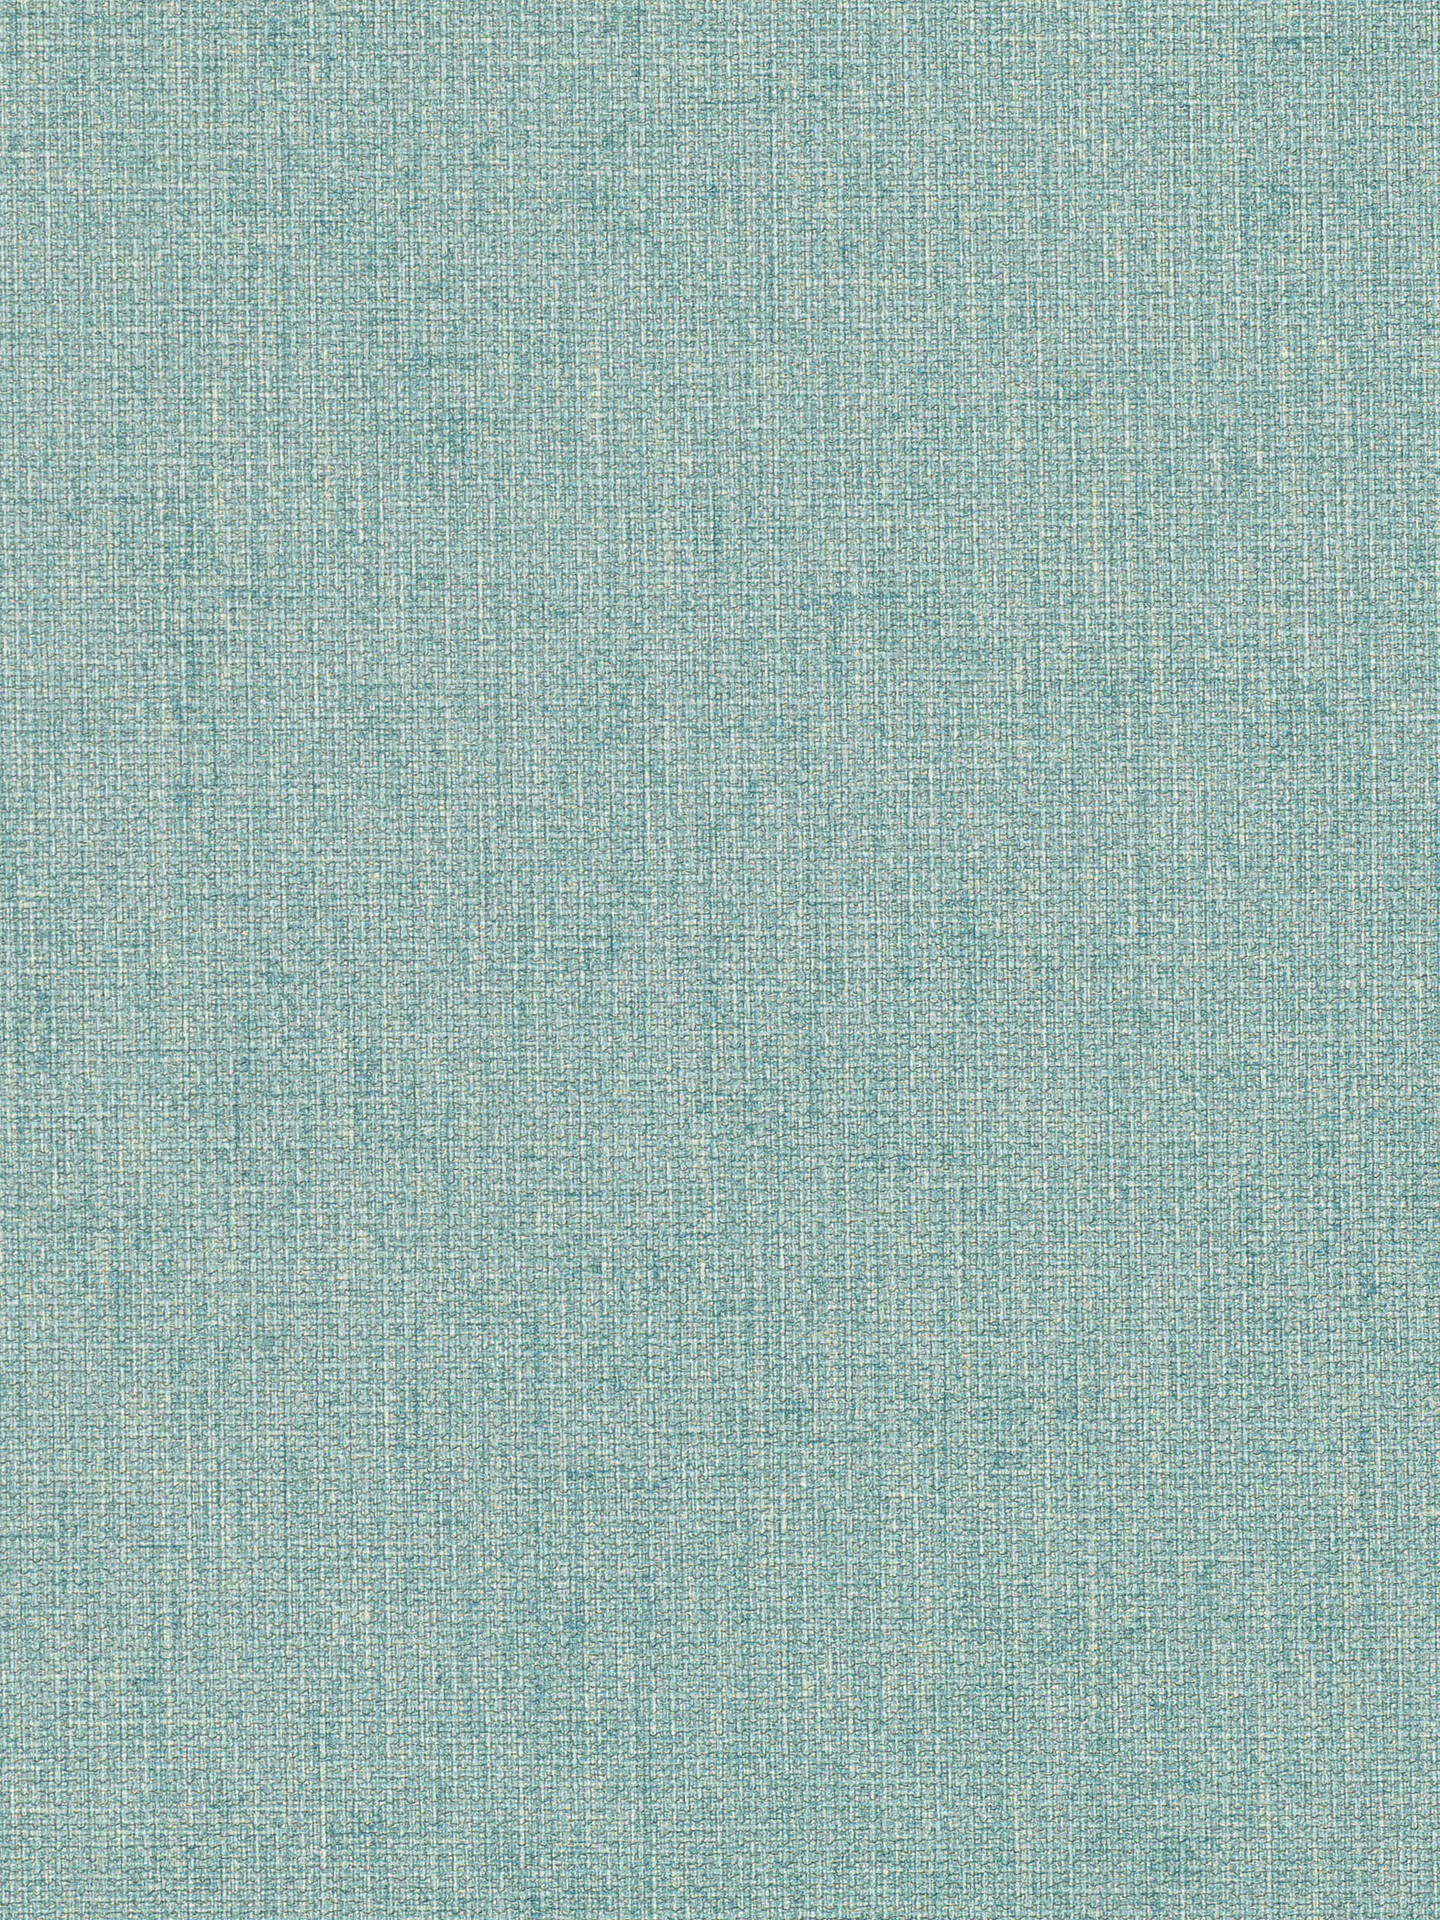 Buy Villa Nova Hana Malmo Wallpaper, Teal W544/03 Online at johnlewis.com